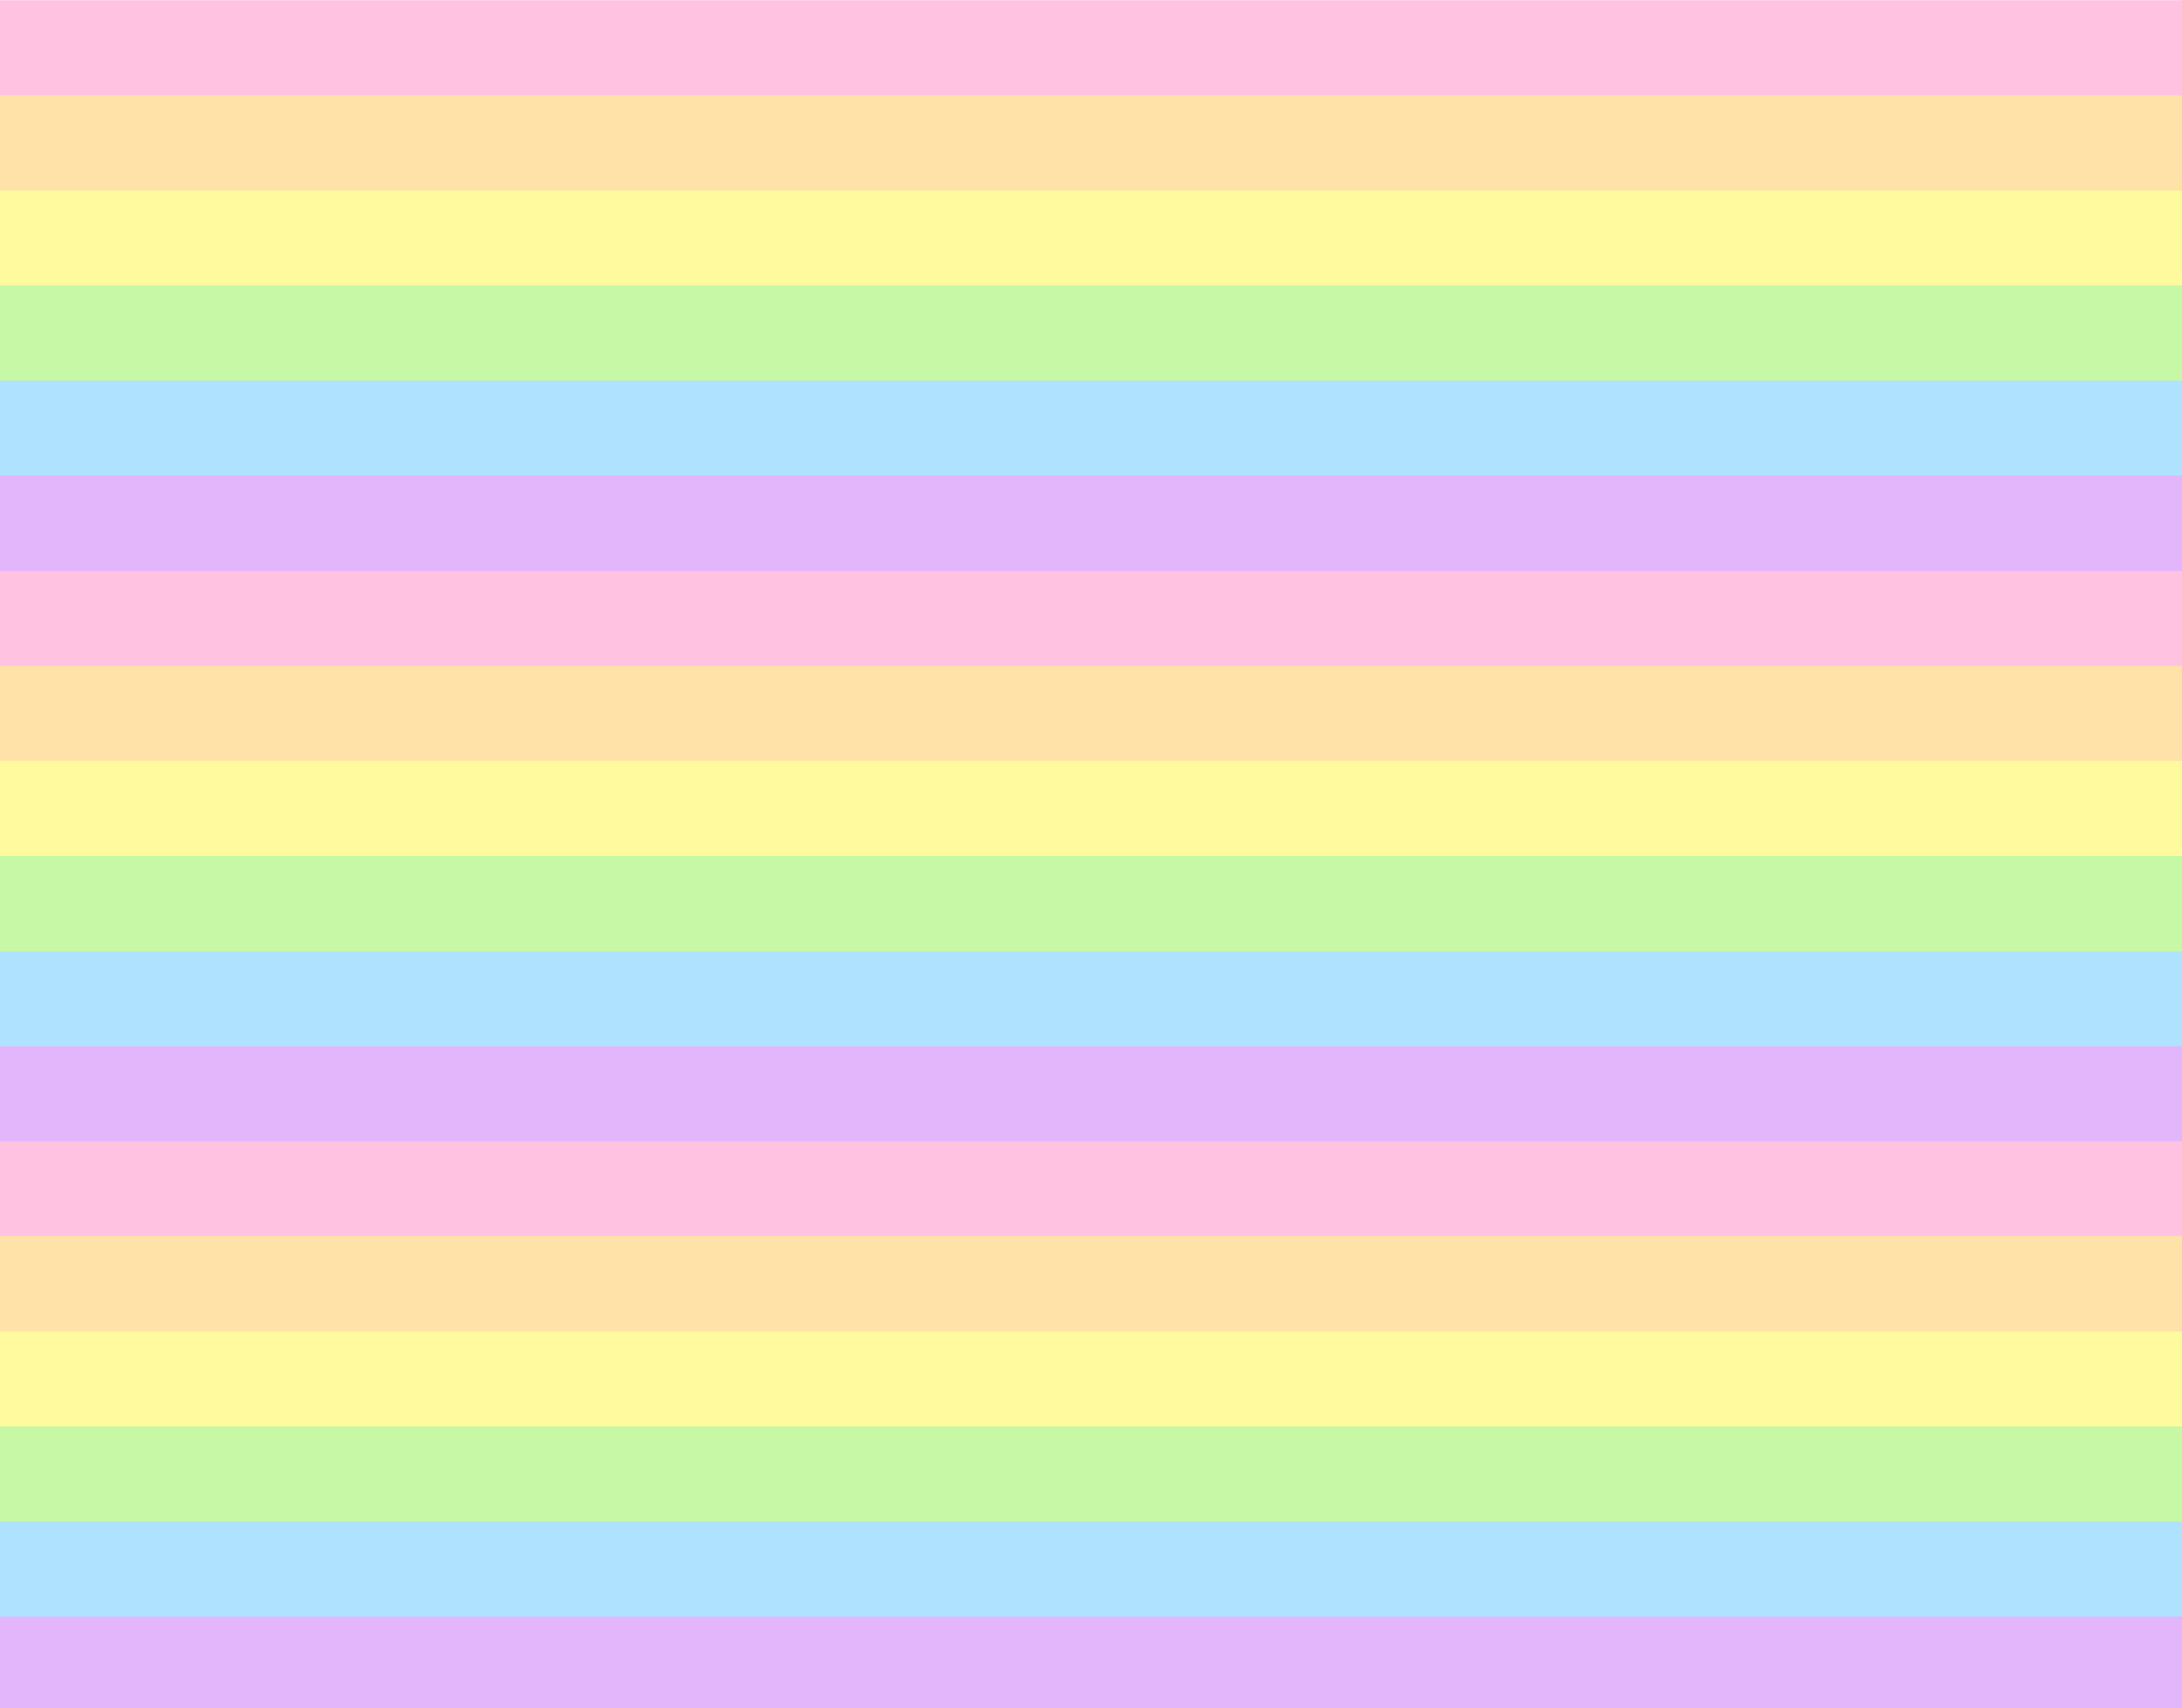 Clipart backgrounds pastel banner Cute Pastel Rainbow Striped Pattern - Free Clip Art banner